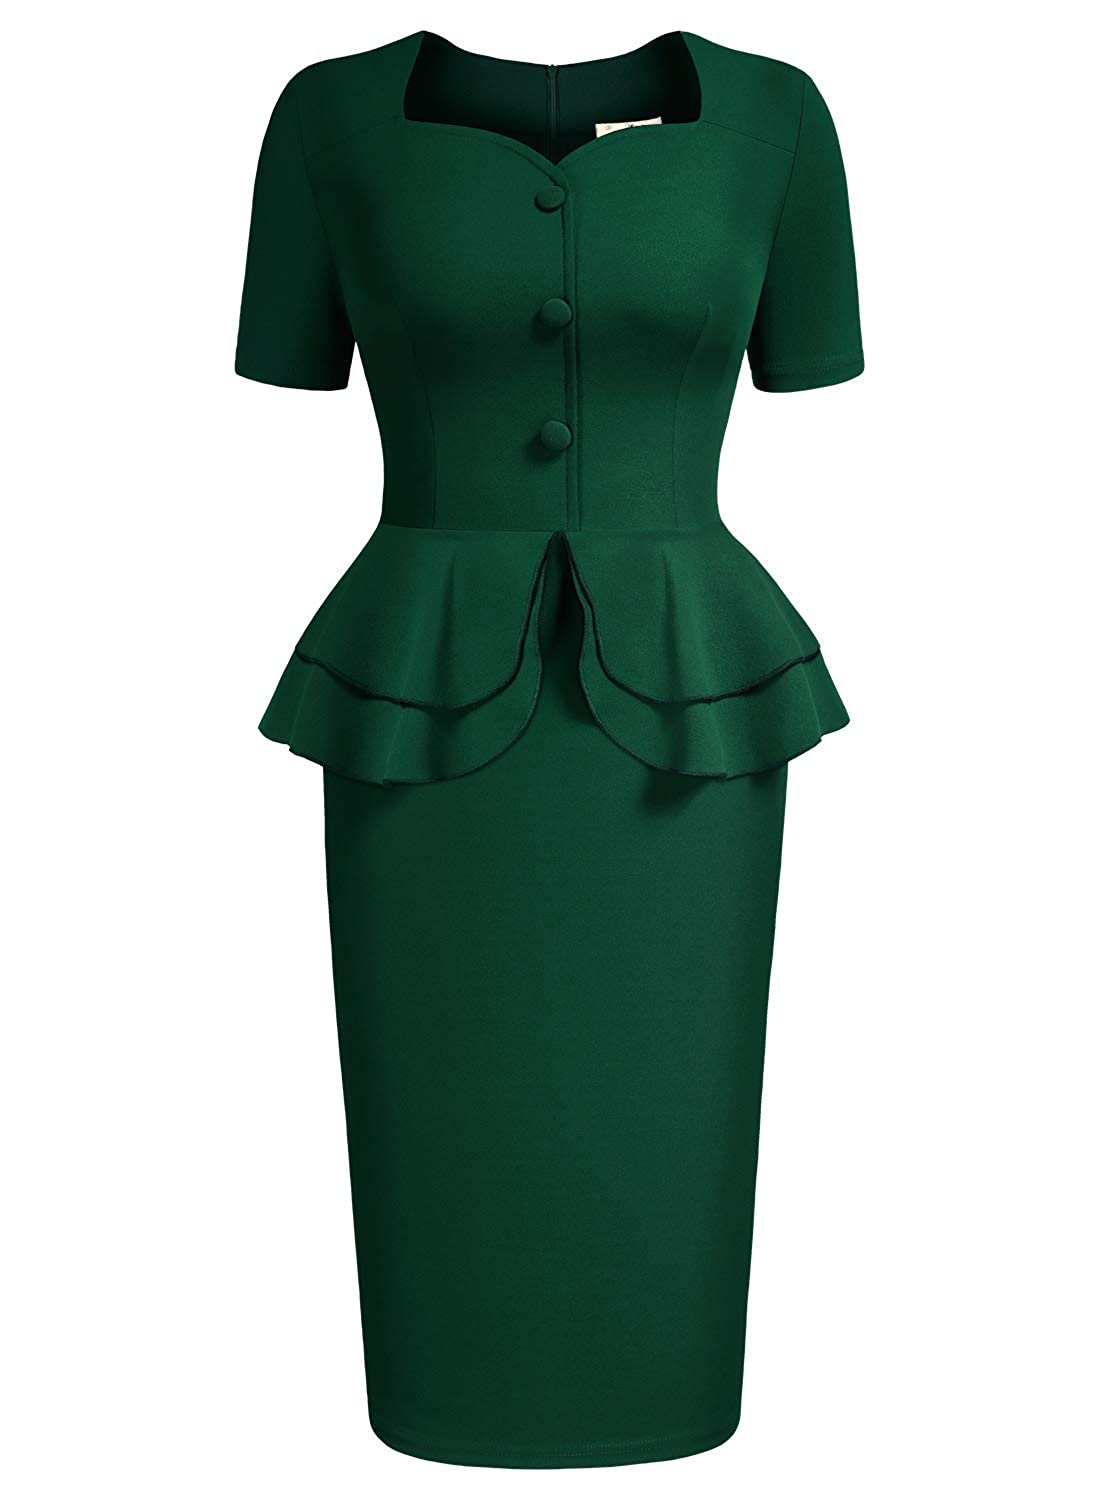 Swing Dance Clothing You Can Dance In AISIZE Women 1940s Vintage Sweetheart Ruffles Peplum Dress $34.99 AT vintagedancer.com